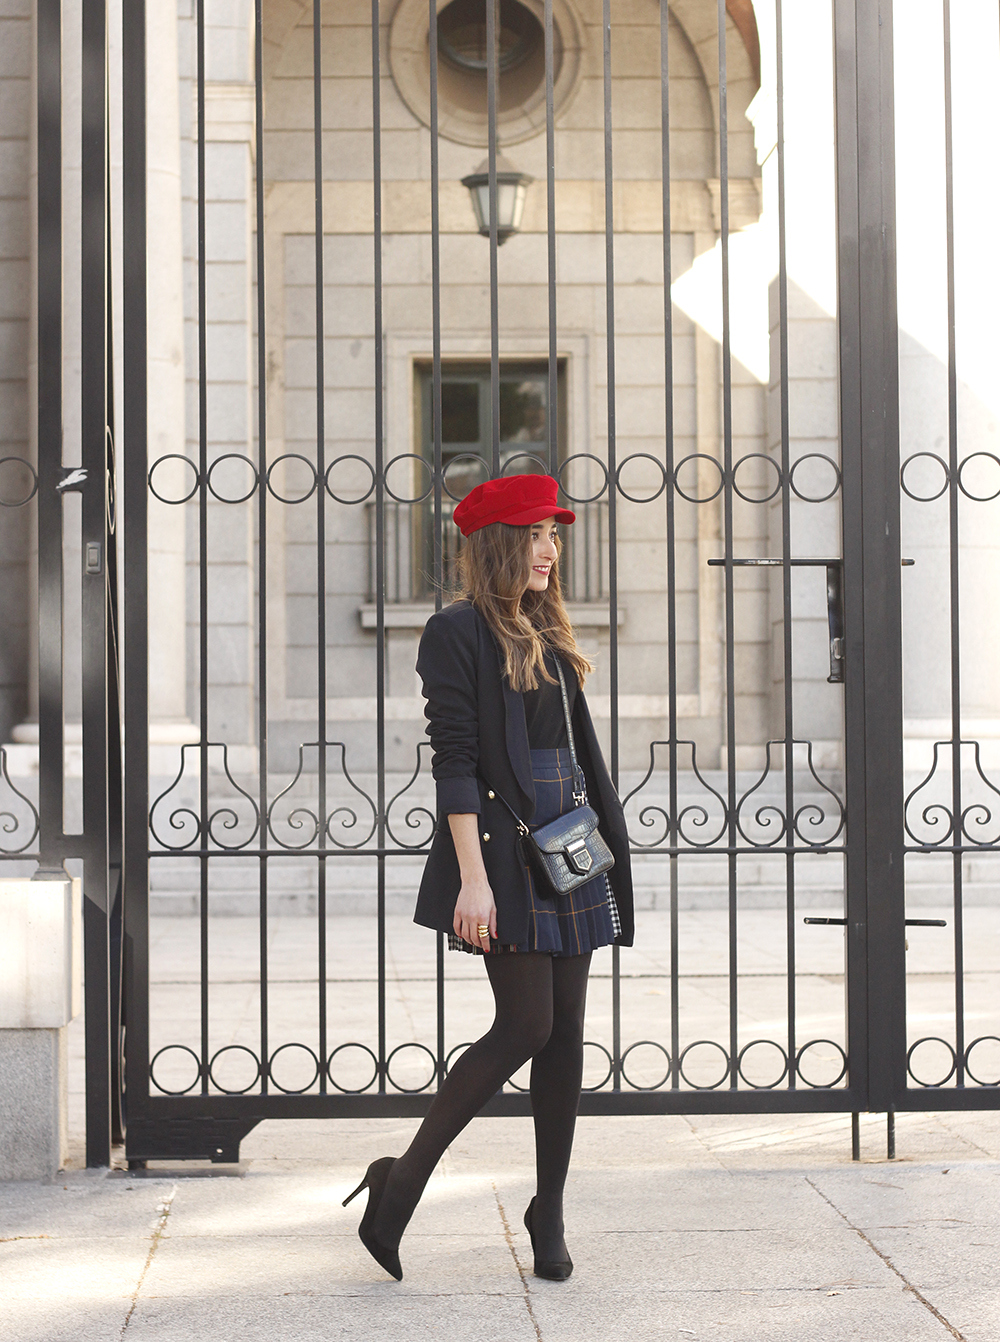 pleated skirt Scottish print Vichy print red navy cap givenchy bag winter outfit falda de tablas look invierno 201803